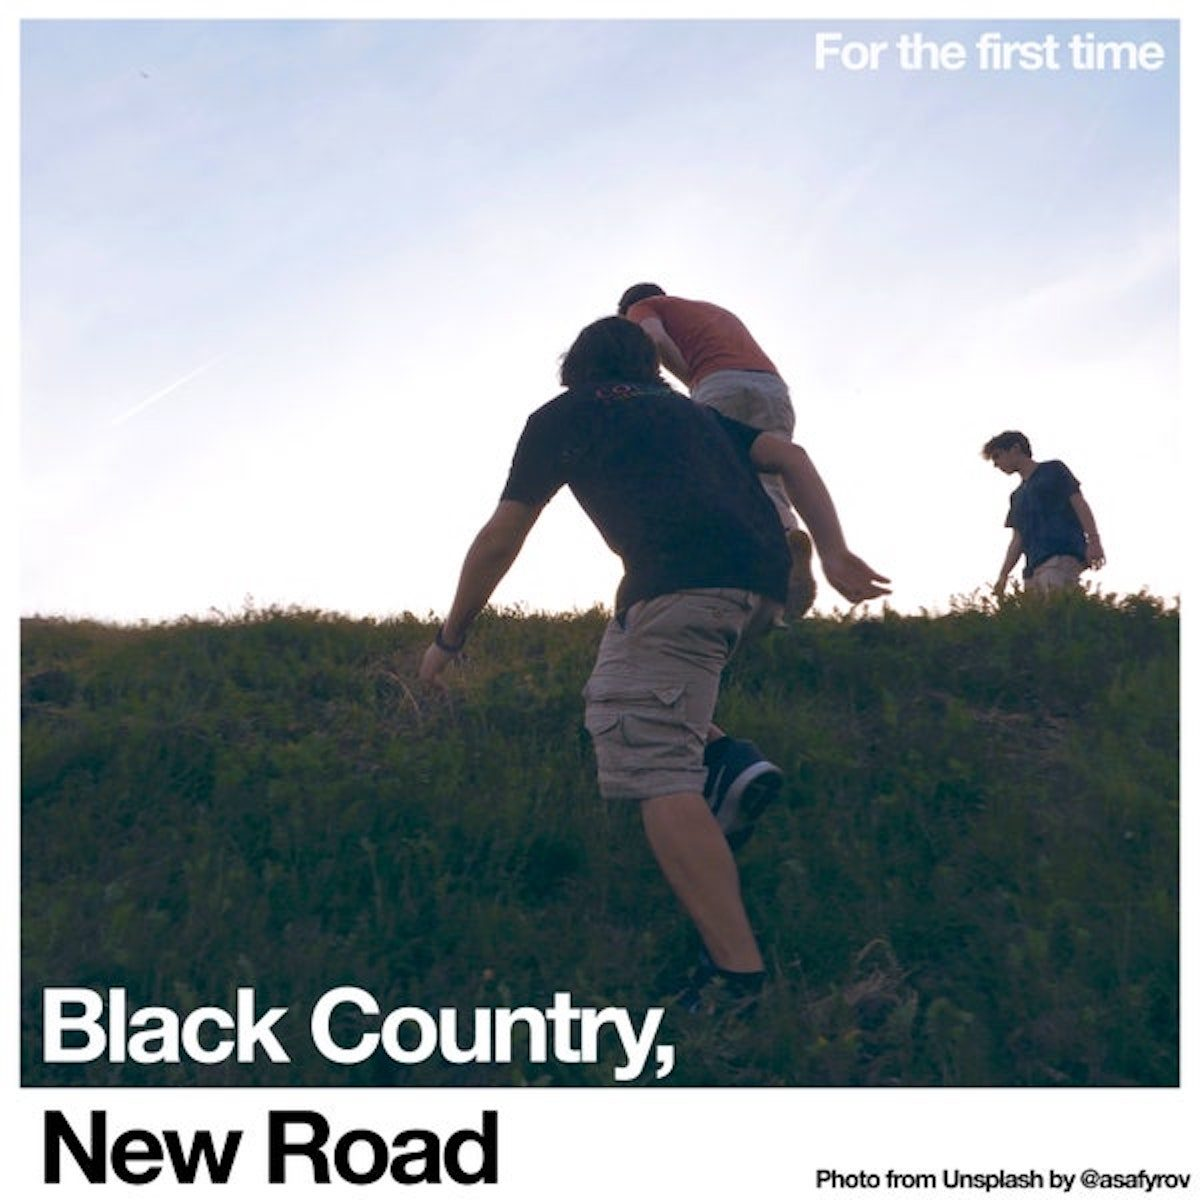 Black-Country-New-Road-For-the-First-Time--1622475581